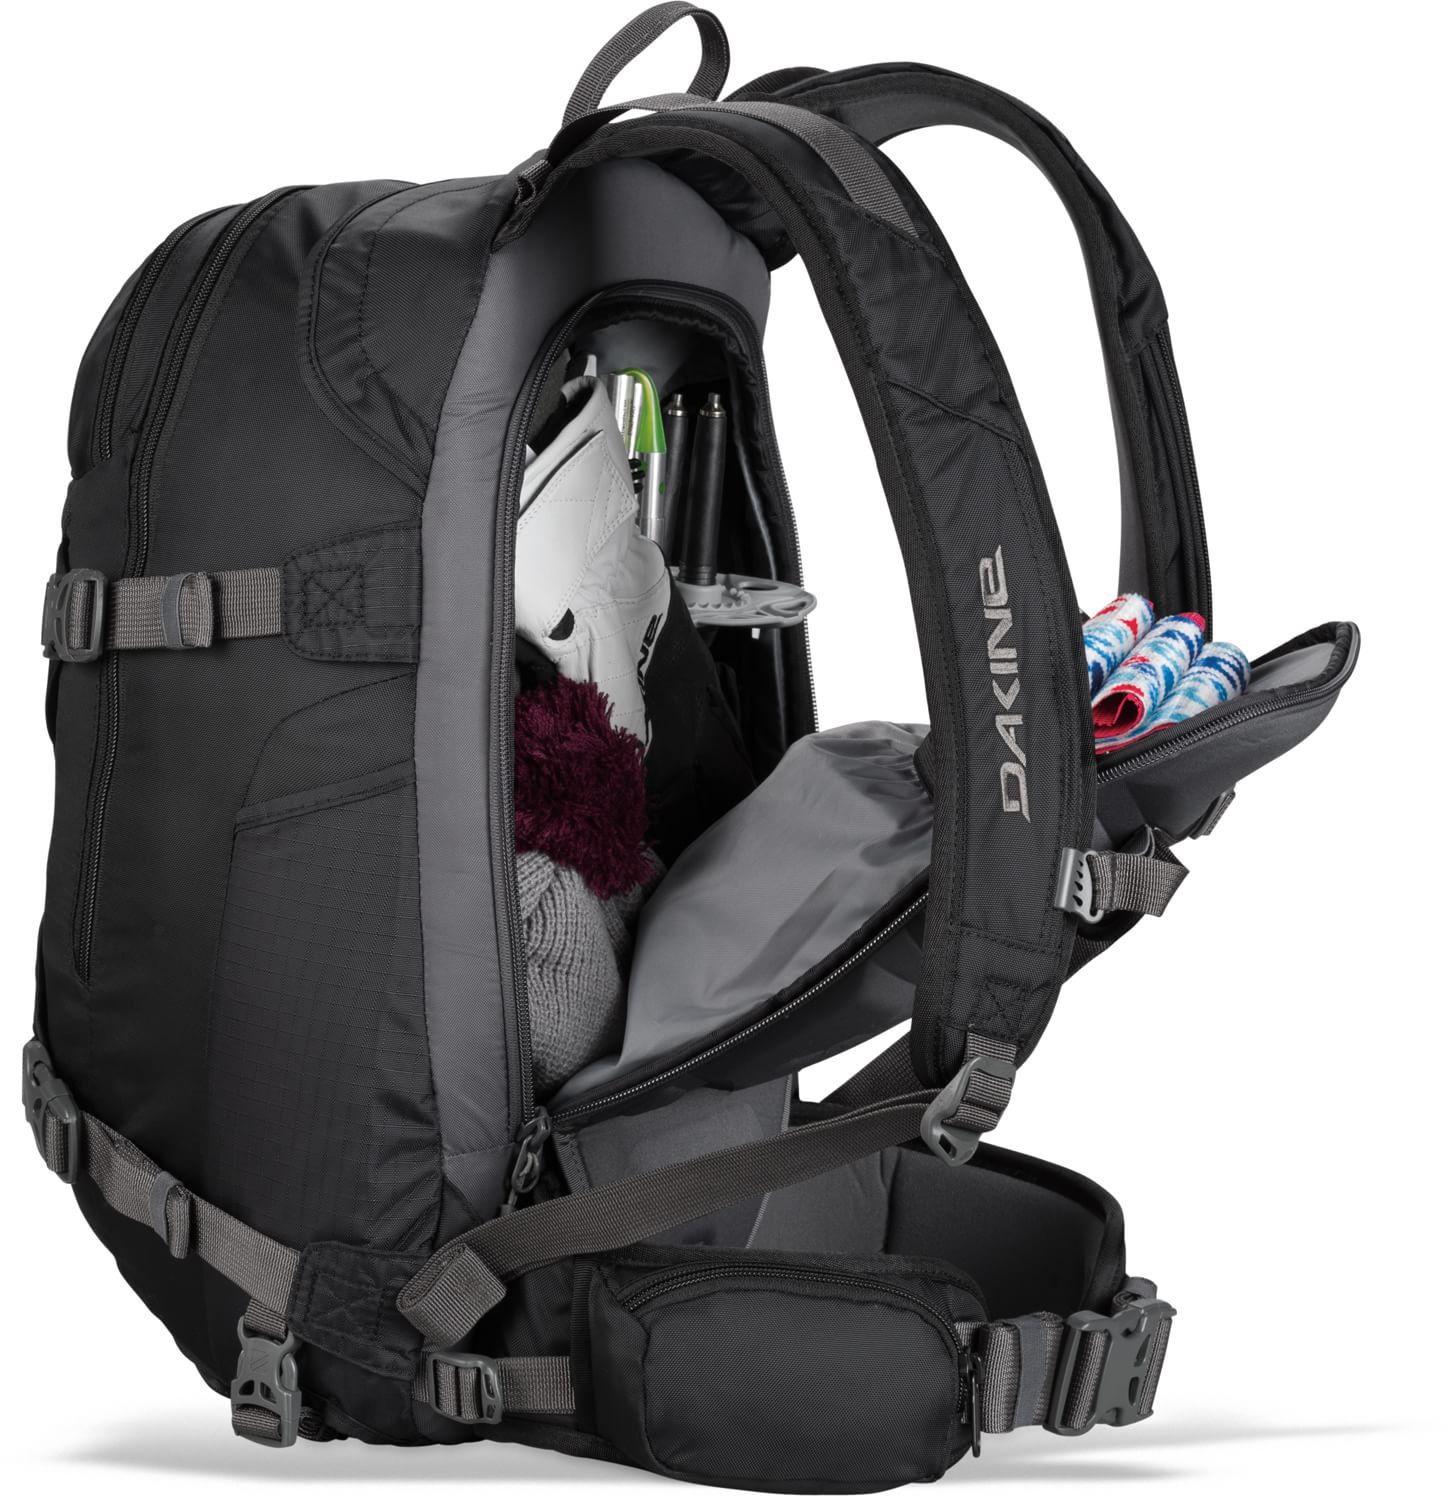 Dakine Snowboard Backpacks exWKRZ3p